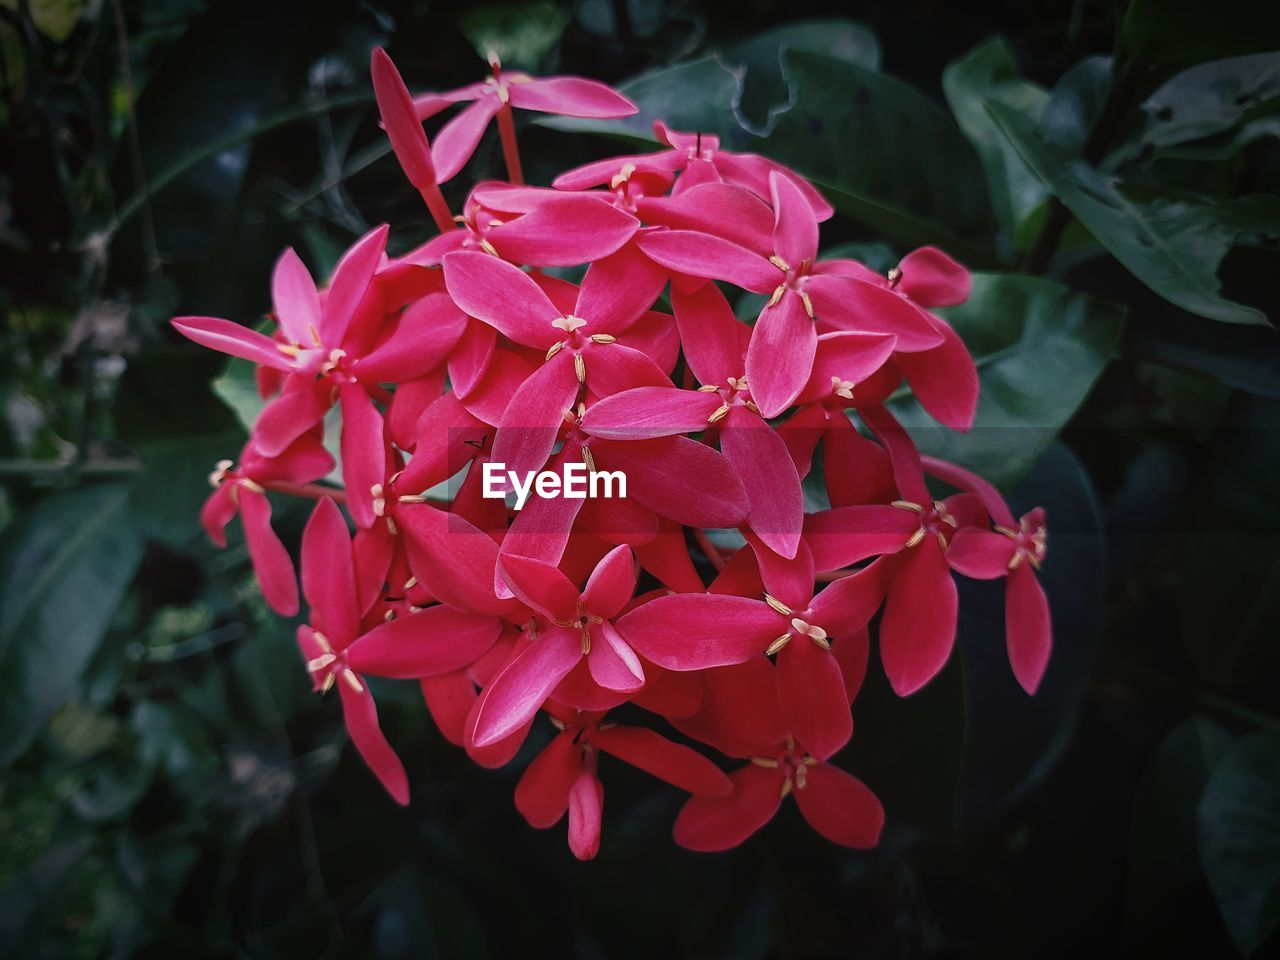 flowering plant, plant, flower, petal, fragility, beauty in nature, vulnerability, freshness, growth, flower head, inflorescence, close-up, pink color, nature, no people, red, day, focus on foreground, leaf, plant part